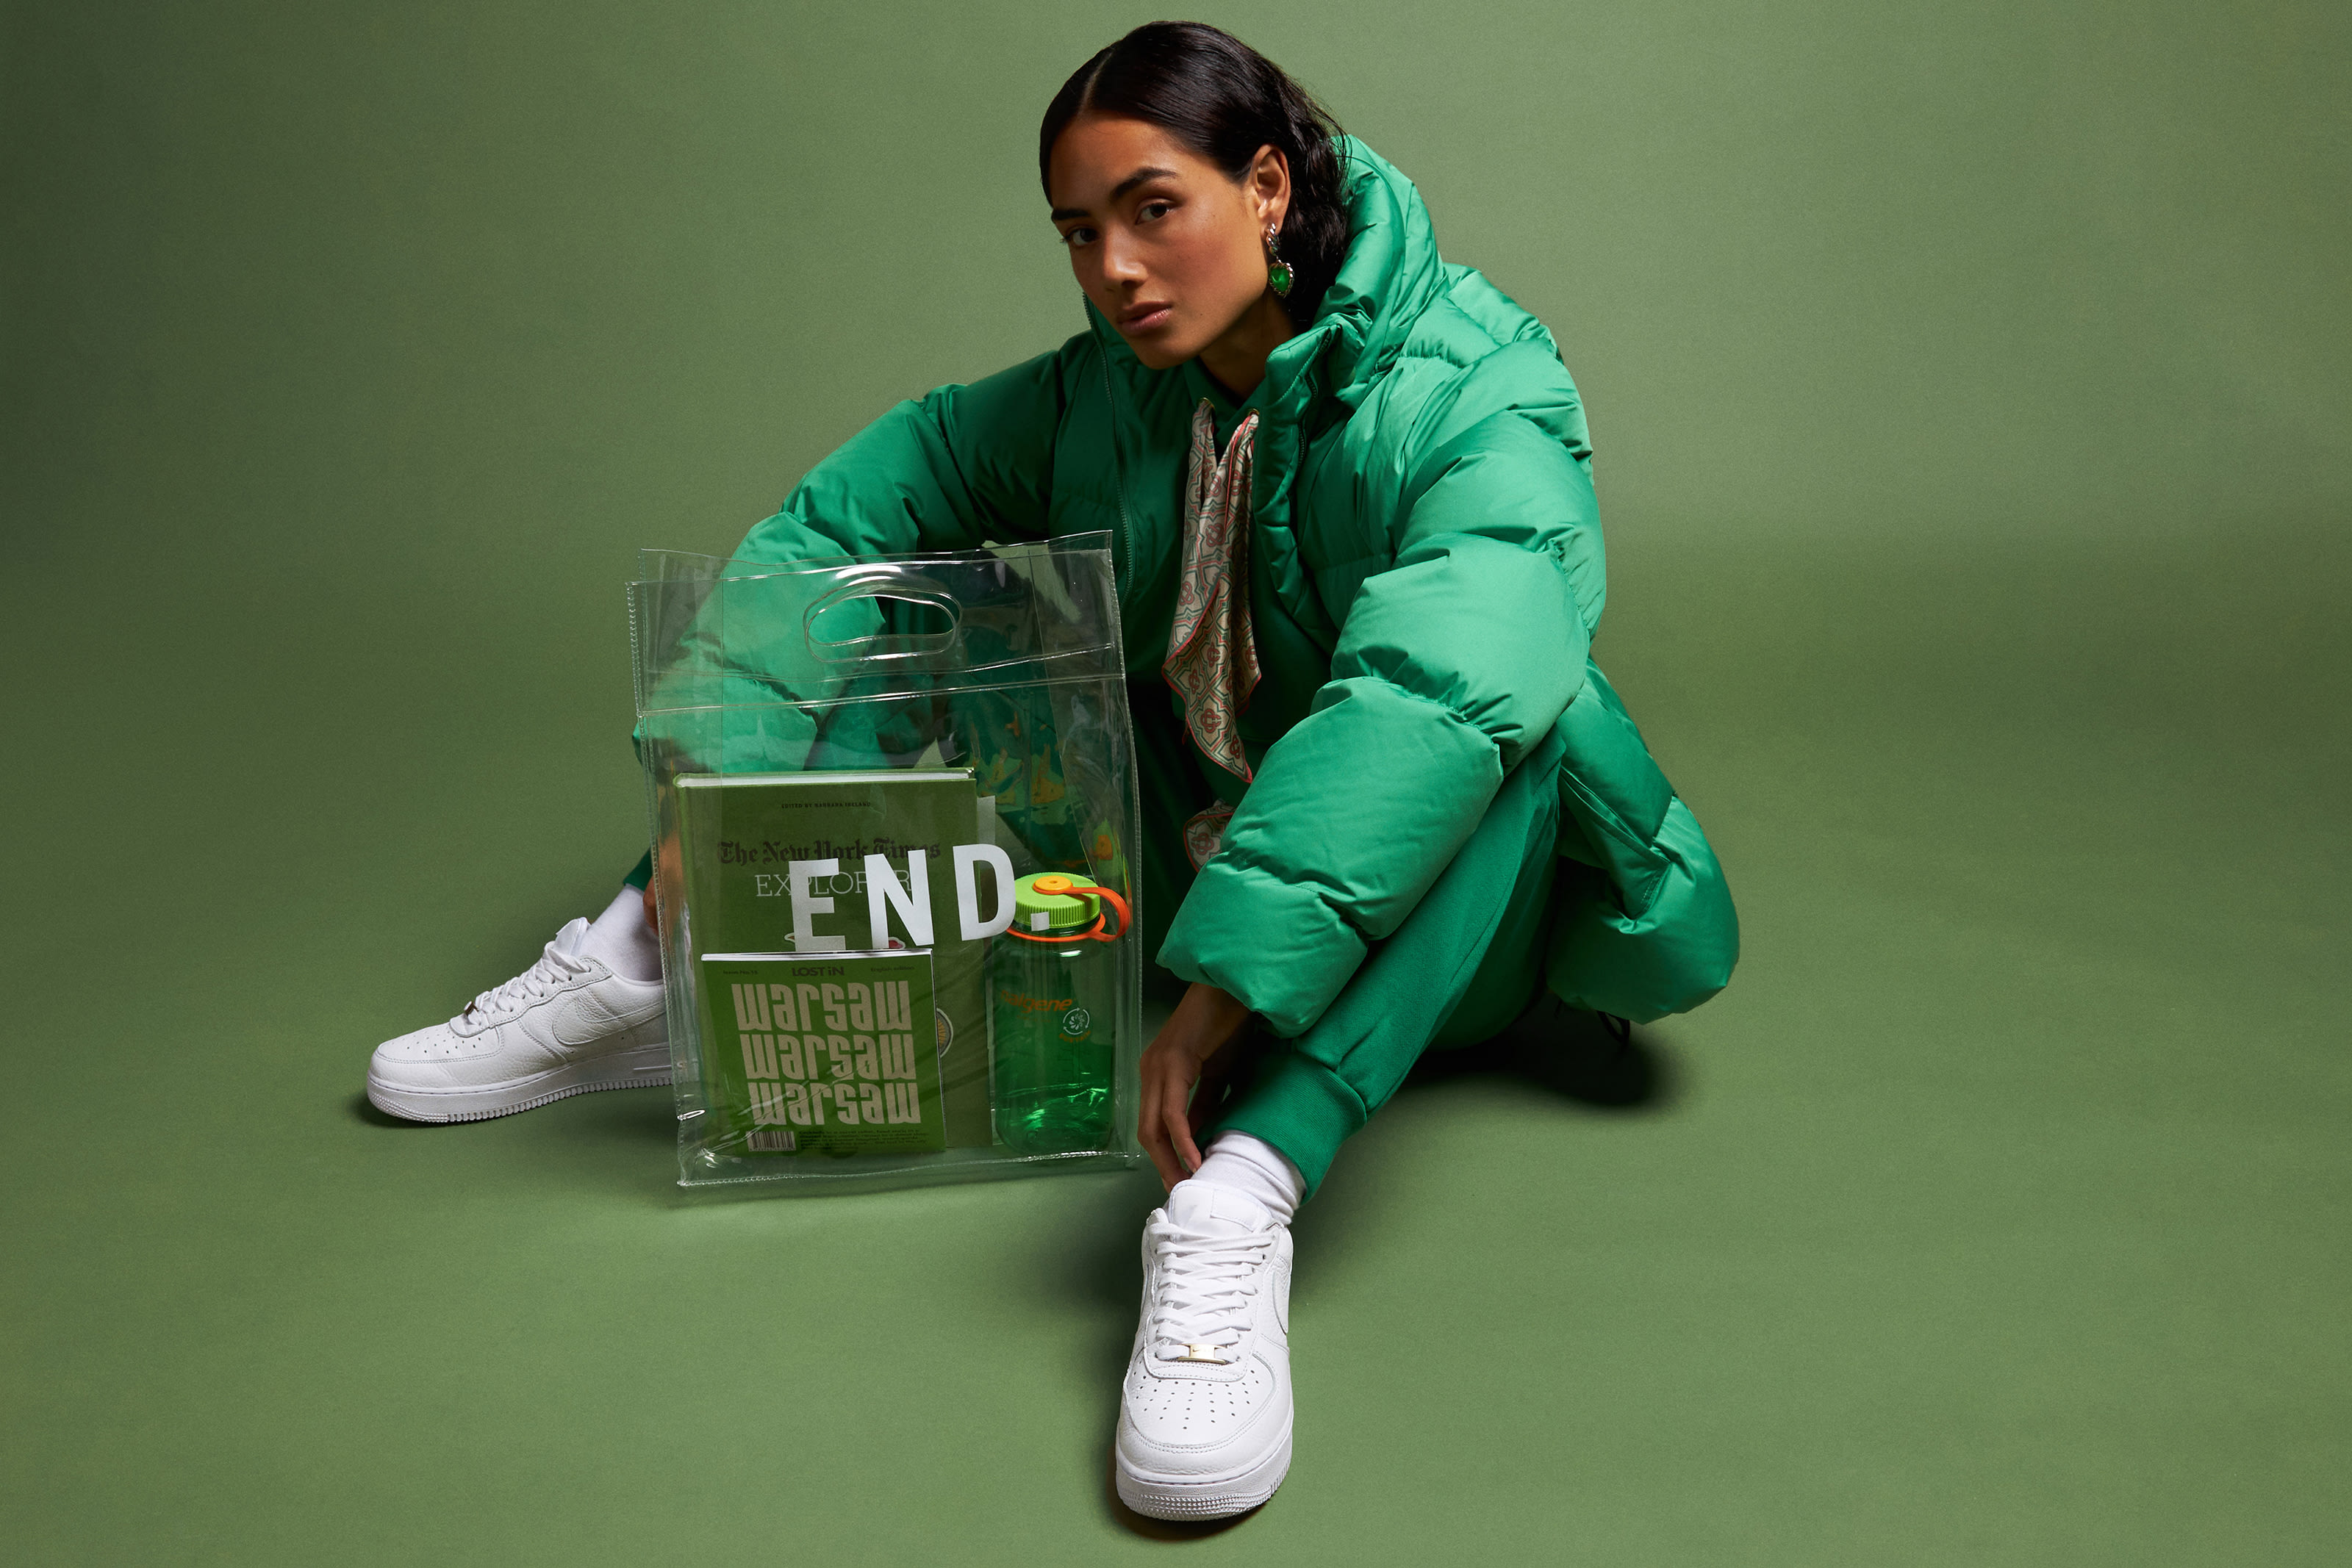 END. Everyday Bag Look Book AW21